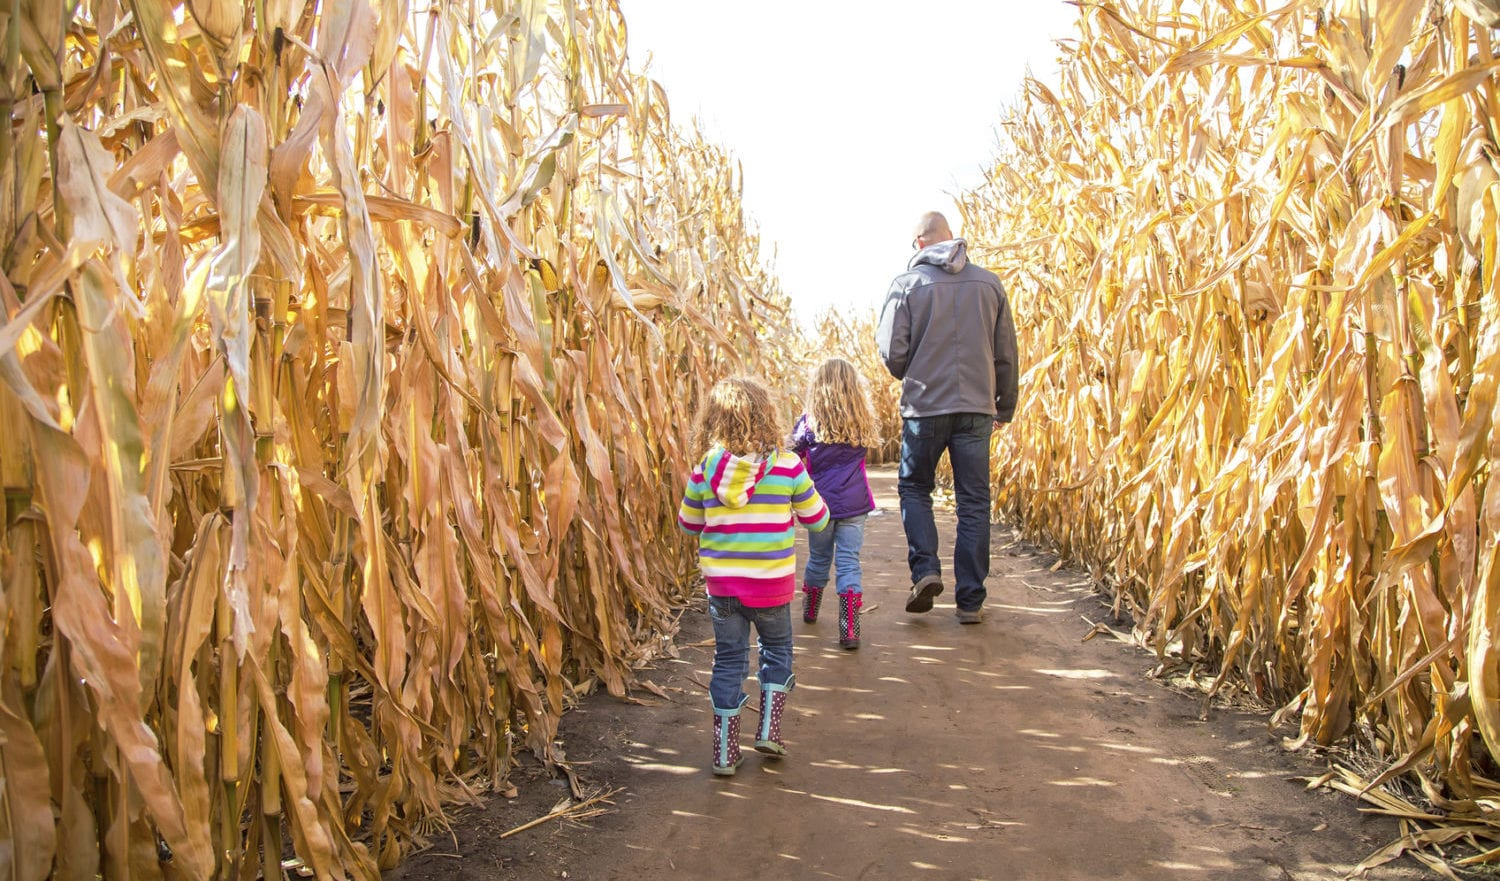 Rear view of two young girls (sisters) walking with Dad through an autumn corn maze. The youngest sister is nearest the camera, while her older sister and Dad walk ahead of her trying to find their way throught the maze.